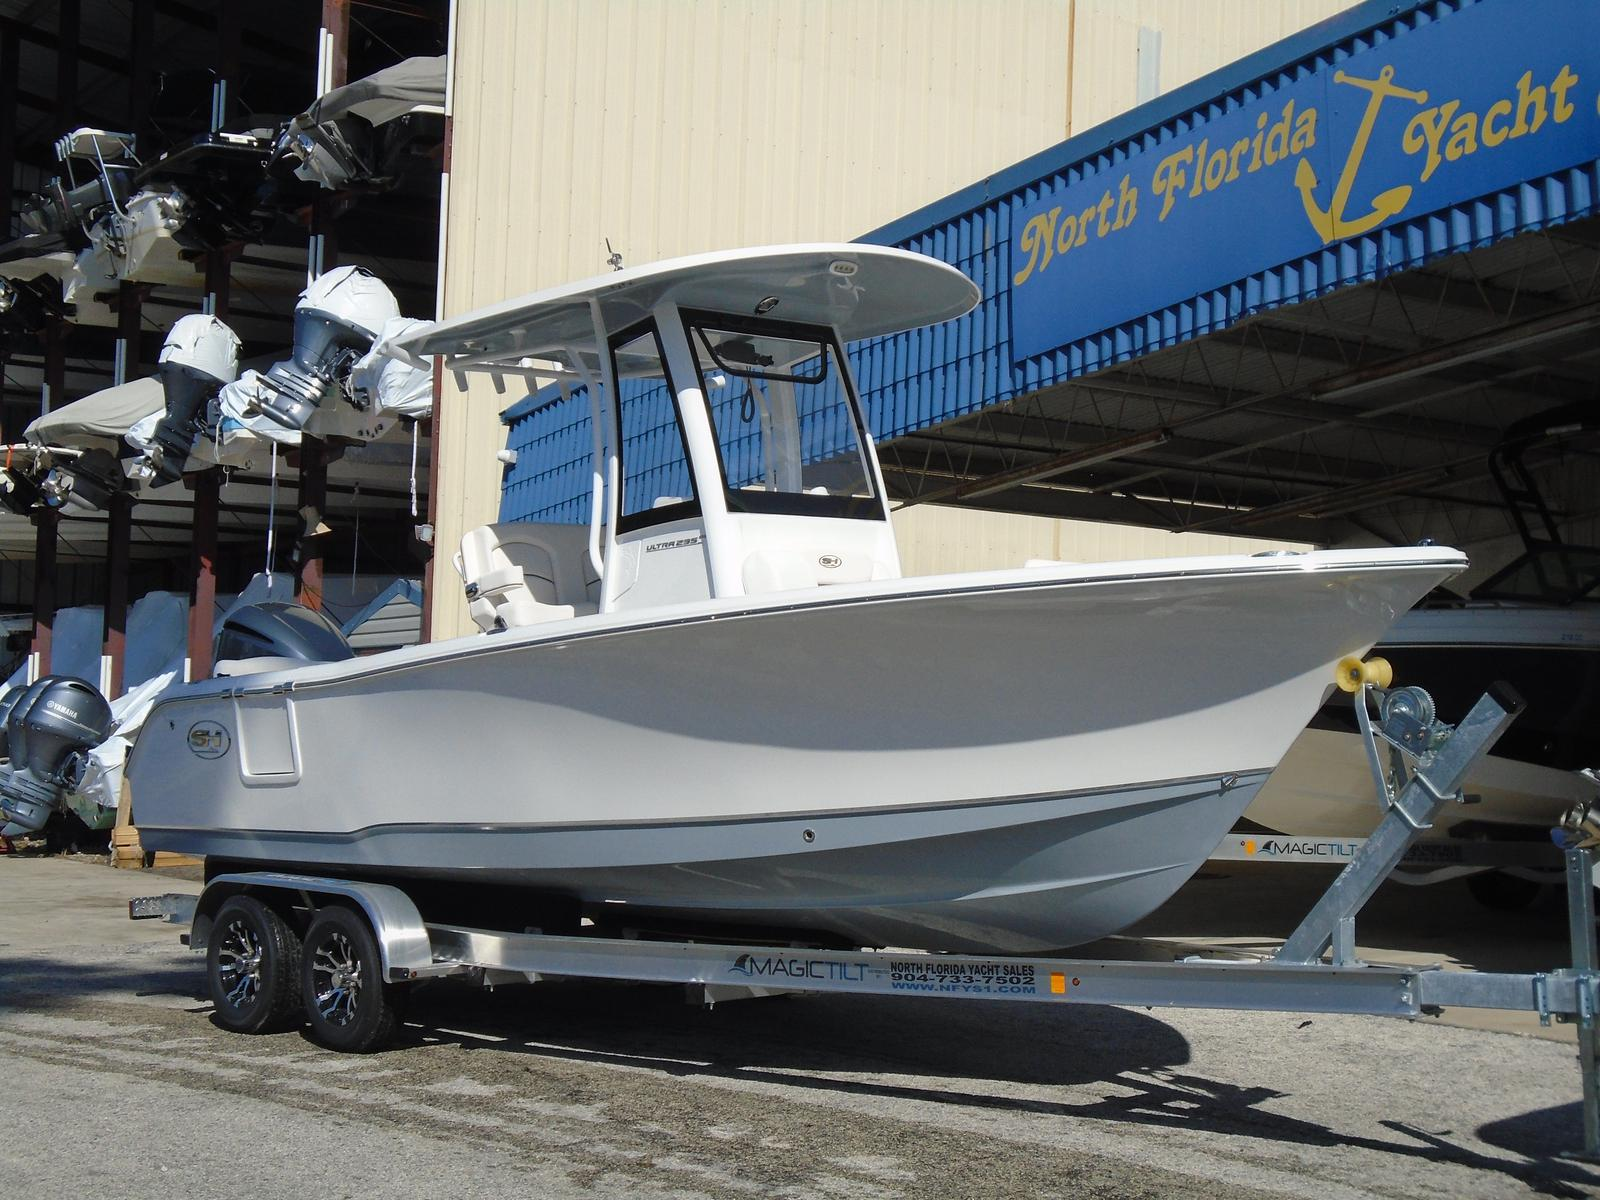 Inventory North Florida Yacht Sales Jacksonville, FL (904